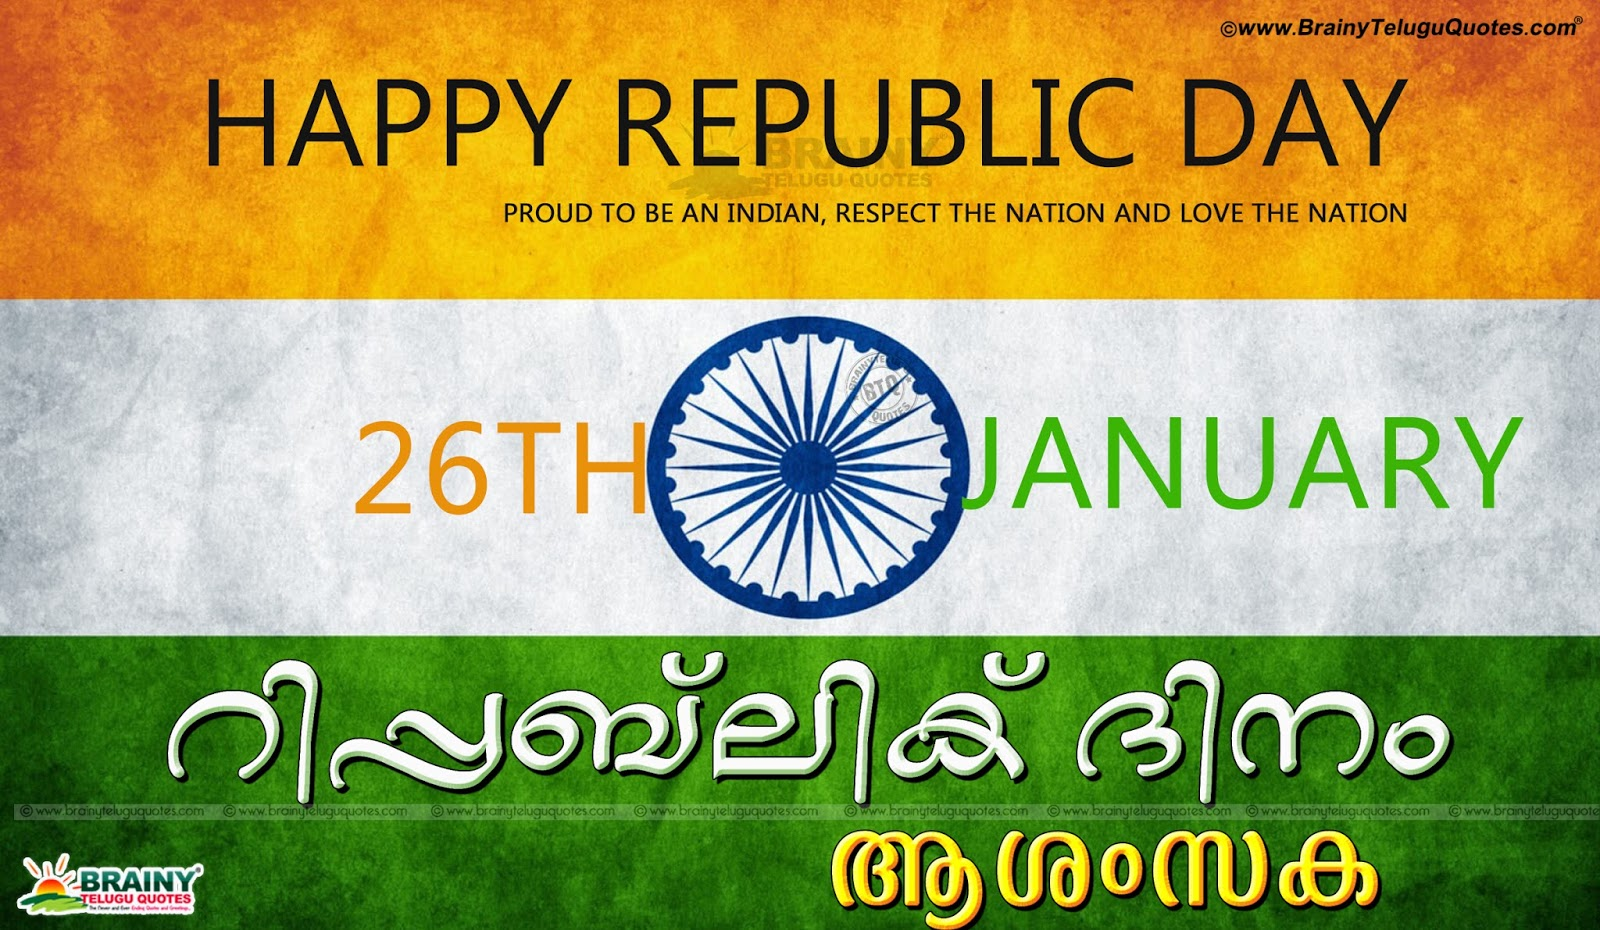 essay on republicday Long and short essay on republic day of india in english republic day is very important day of the year for the people of india so we celebrate it annually on 26 th.